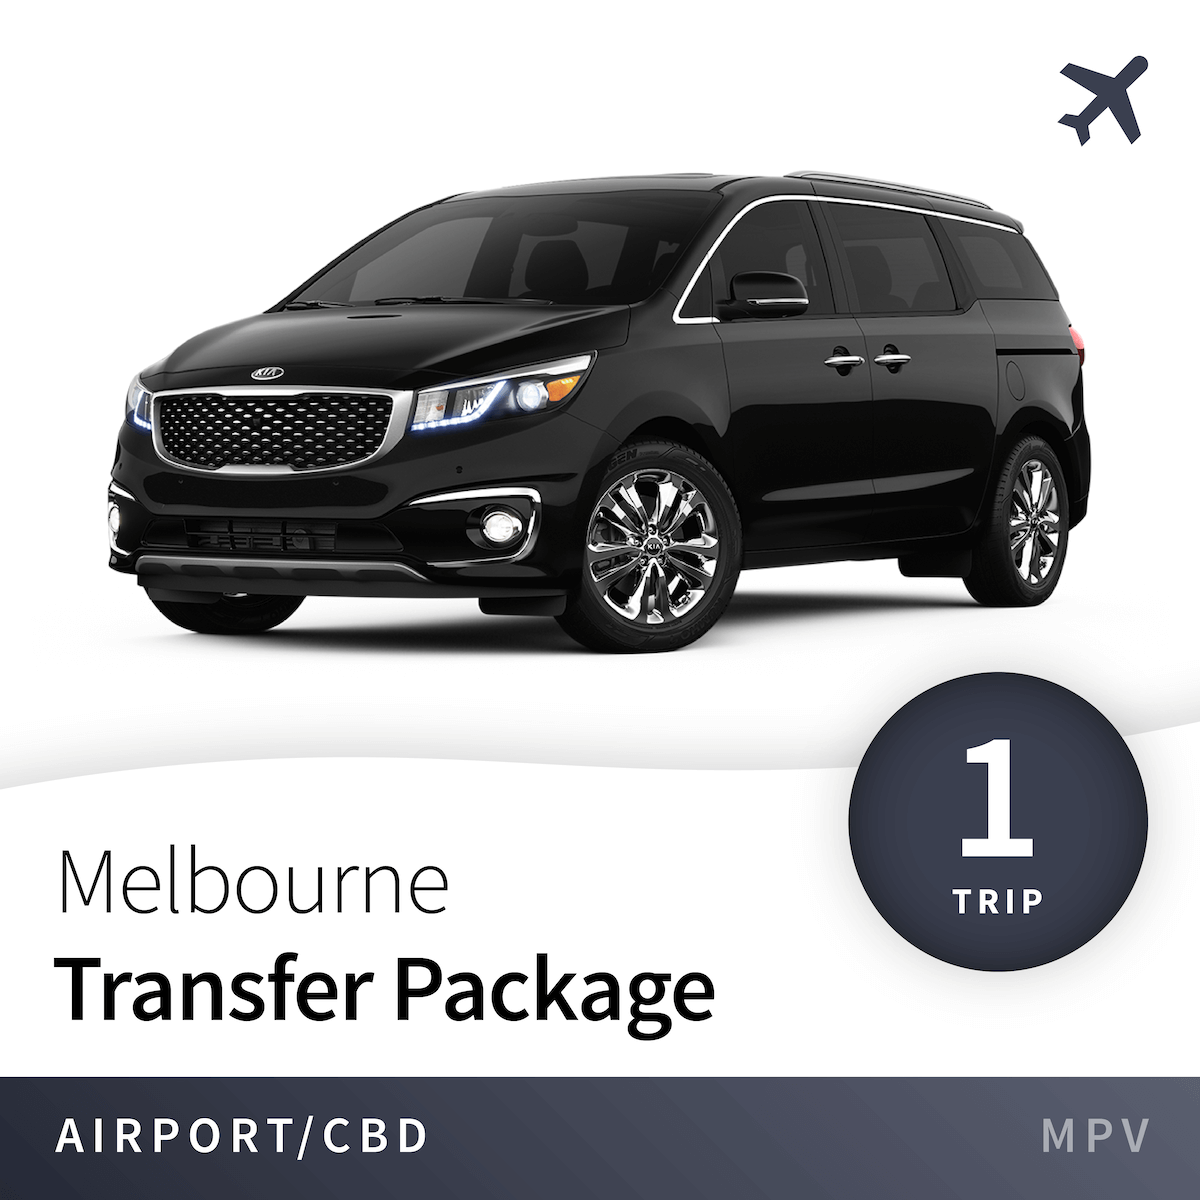 Melbourne Airport Transfer Package - MPV (1 Trip) 10